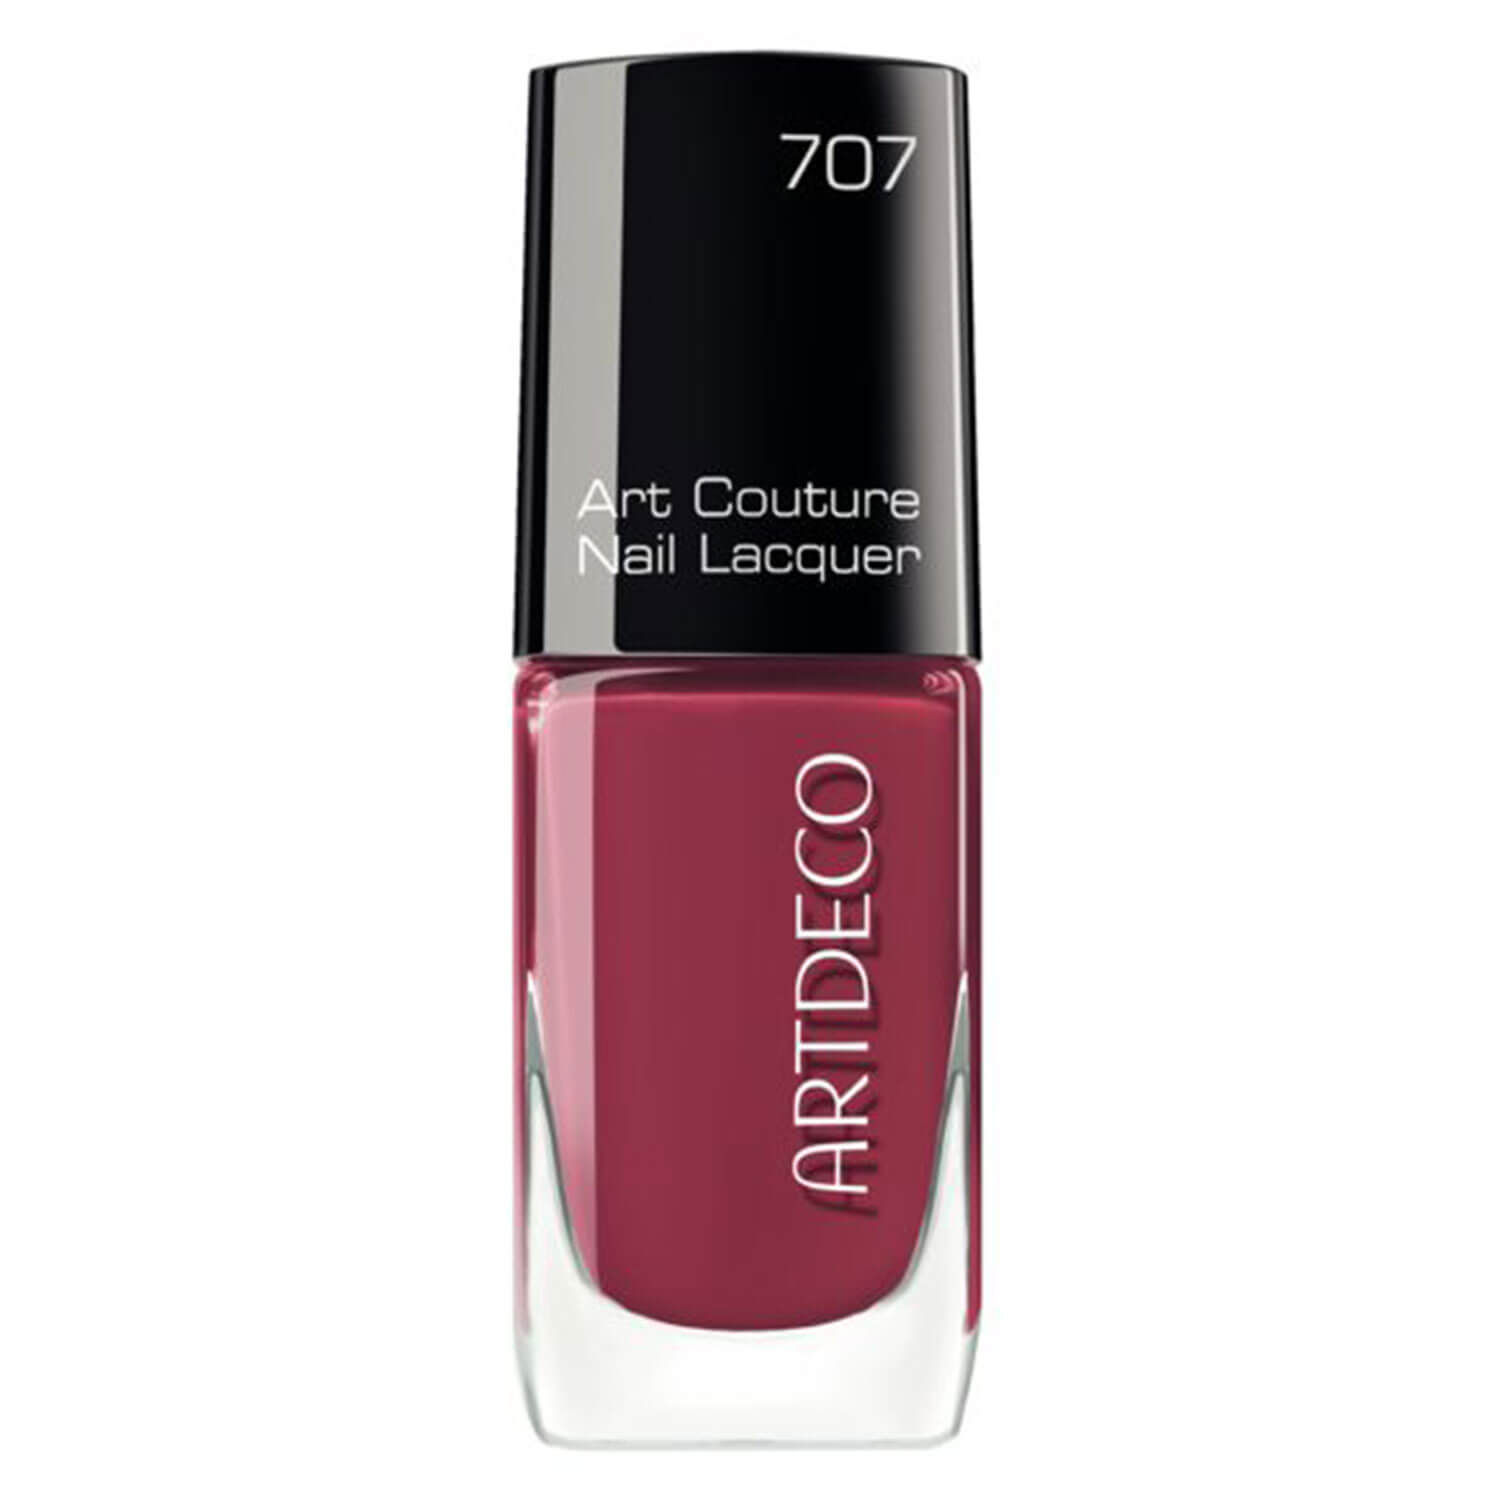 Art Couture - Nail Lacquer Crown Pink 707